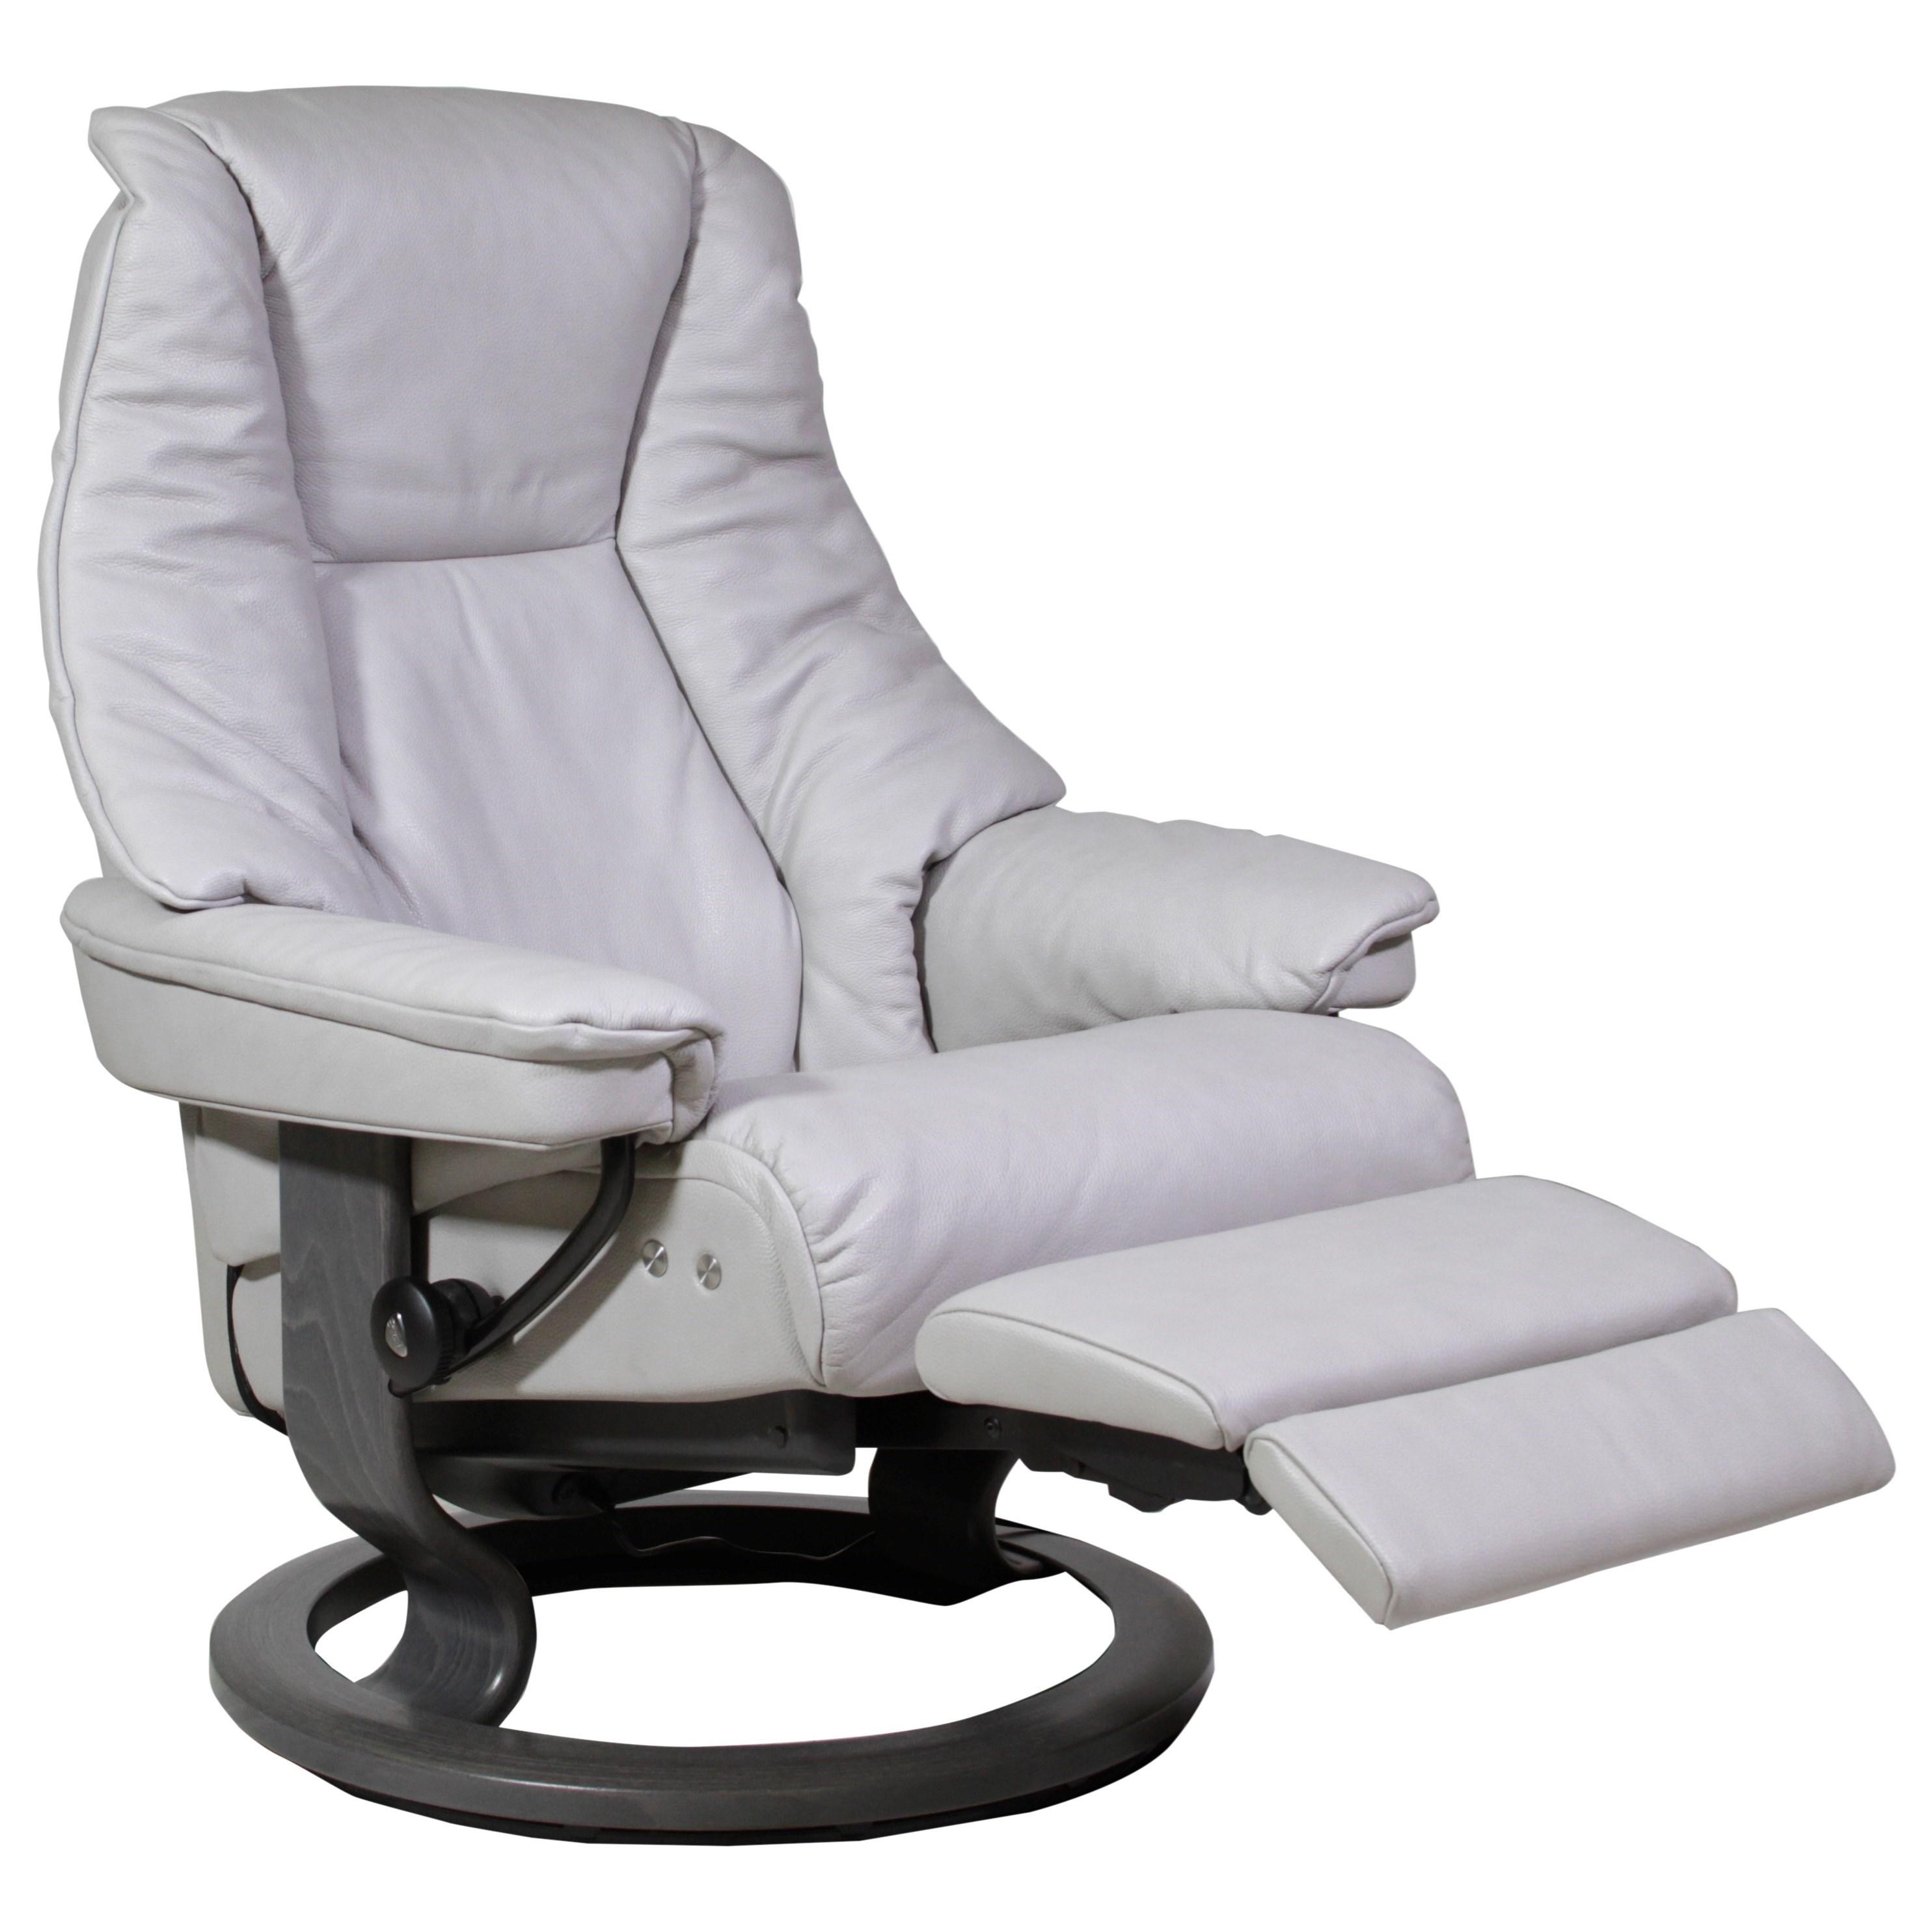 Stressless Chair Prices Stressless Live 1319715 Medium Legcomfort Recliner Dunk